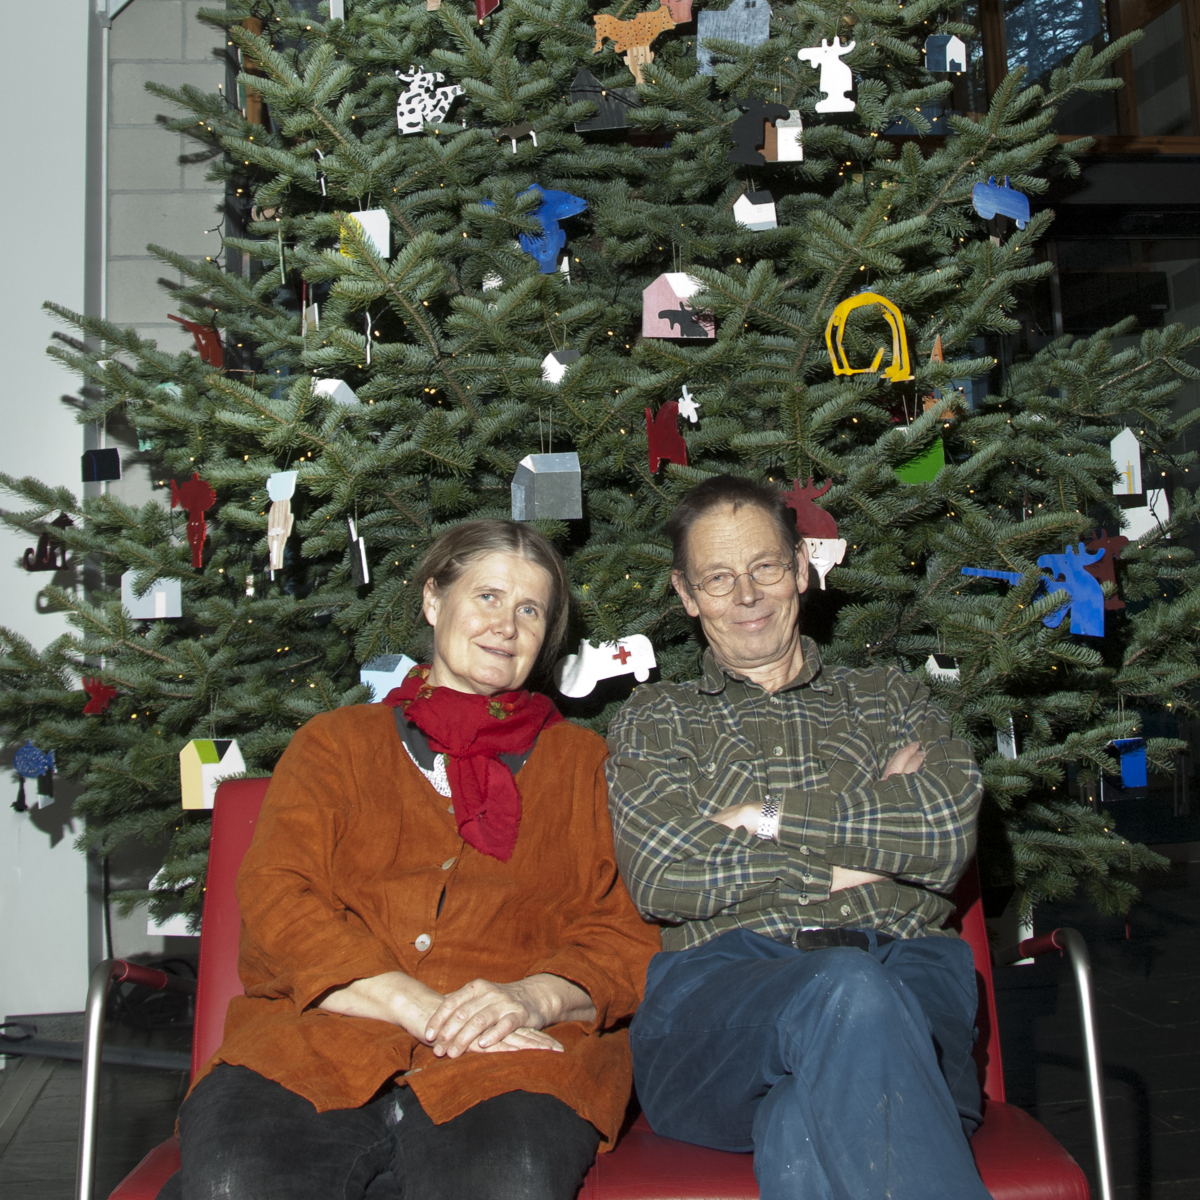 Maihaugen's Christmas tree 2013, decorated by Hanne Borchgrevink and Tore Hansen. Photo: Audbjørn Rønning/Maihaugen